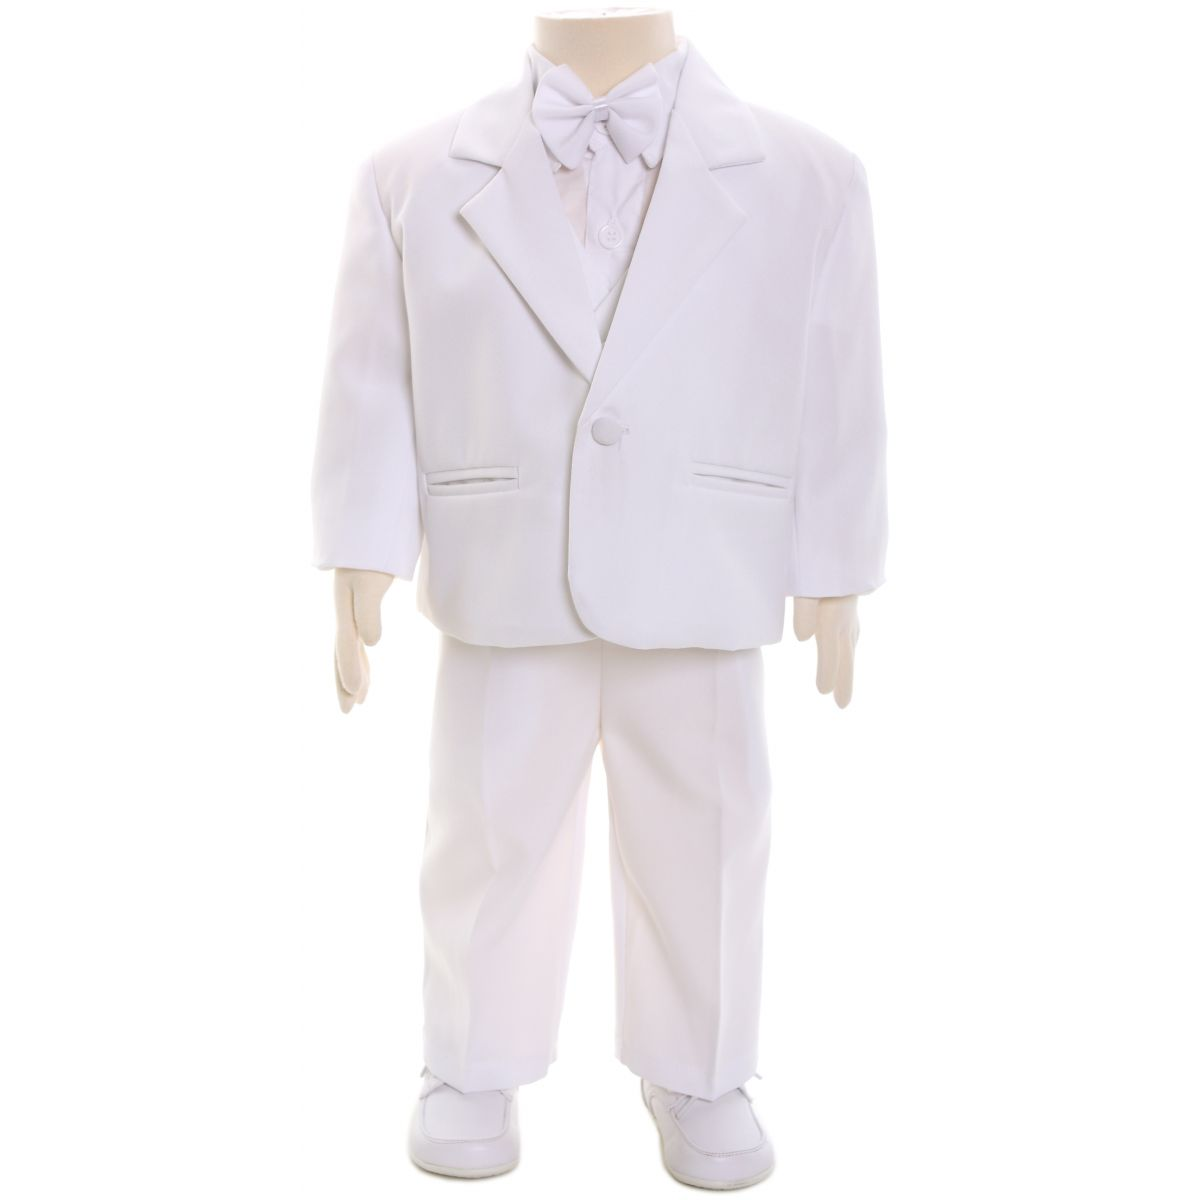 Gino Giovanni New Formal Suit Set for Boys From Baby to Teen (1) Sold by US Fairytailes. $ Black N Bianco Boys Suit in Black Dresswear Set 2T 3T 4T. Sold by House Bianco + 6. $ - $ Johnnie Lene Pinstripe Boys Formal Dresswear Vest Set. Sold by US Fairytailes. $ $